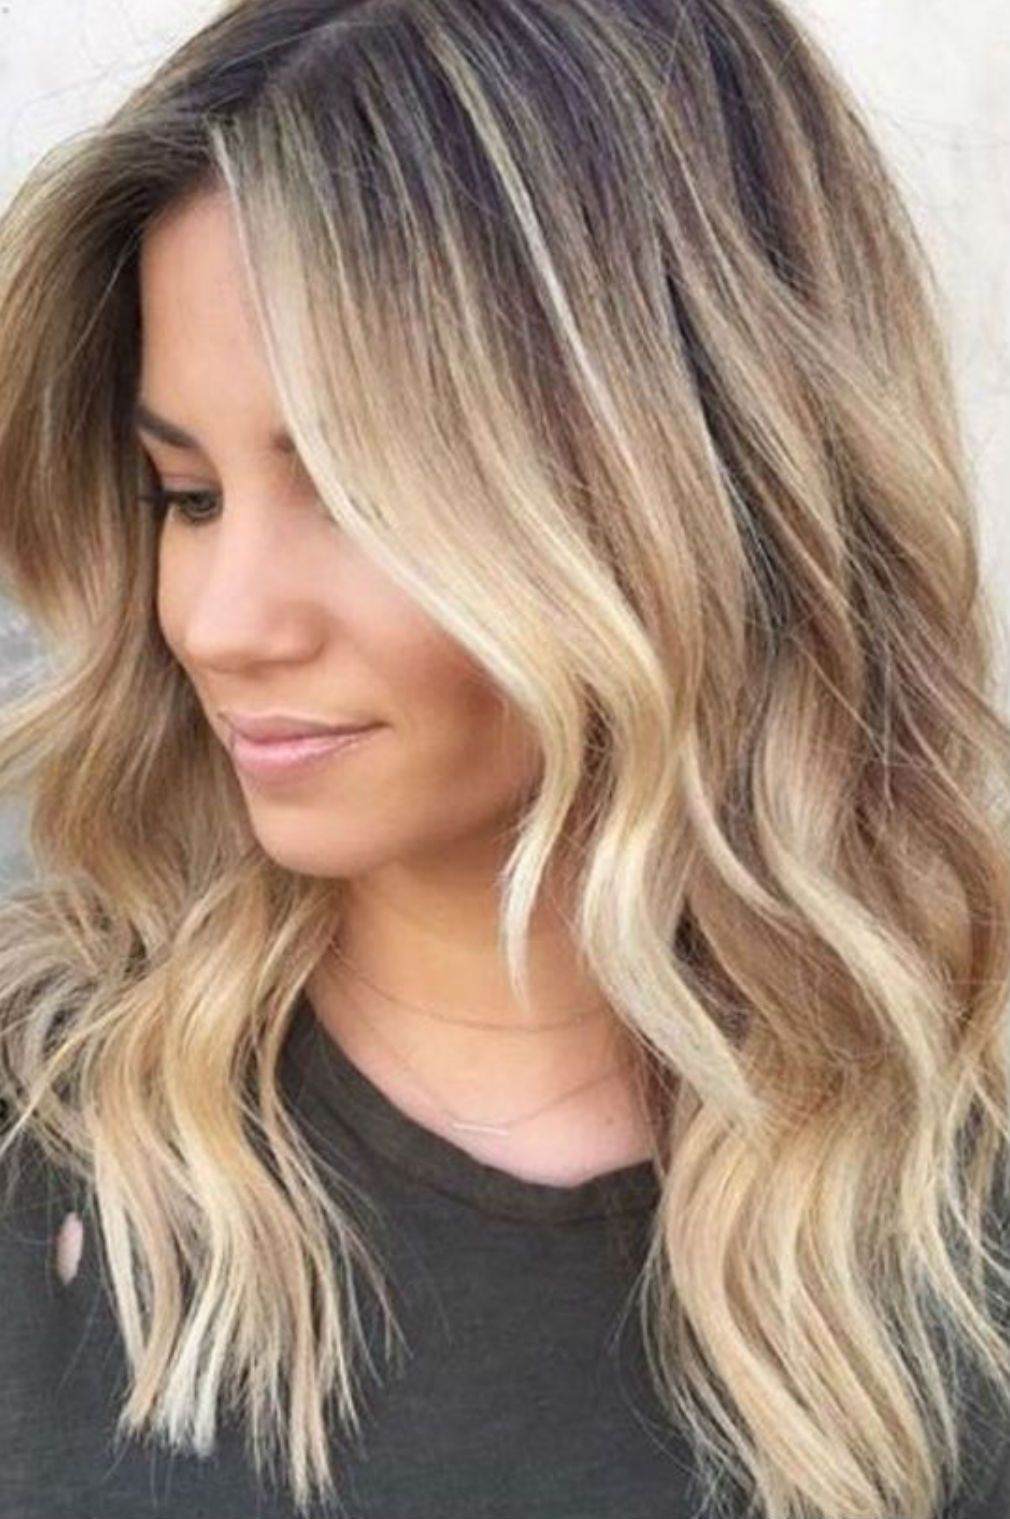 44+ Coiffure long blond des idees